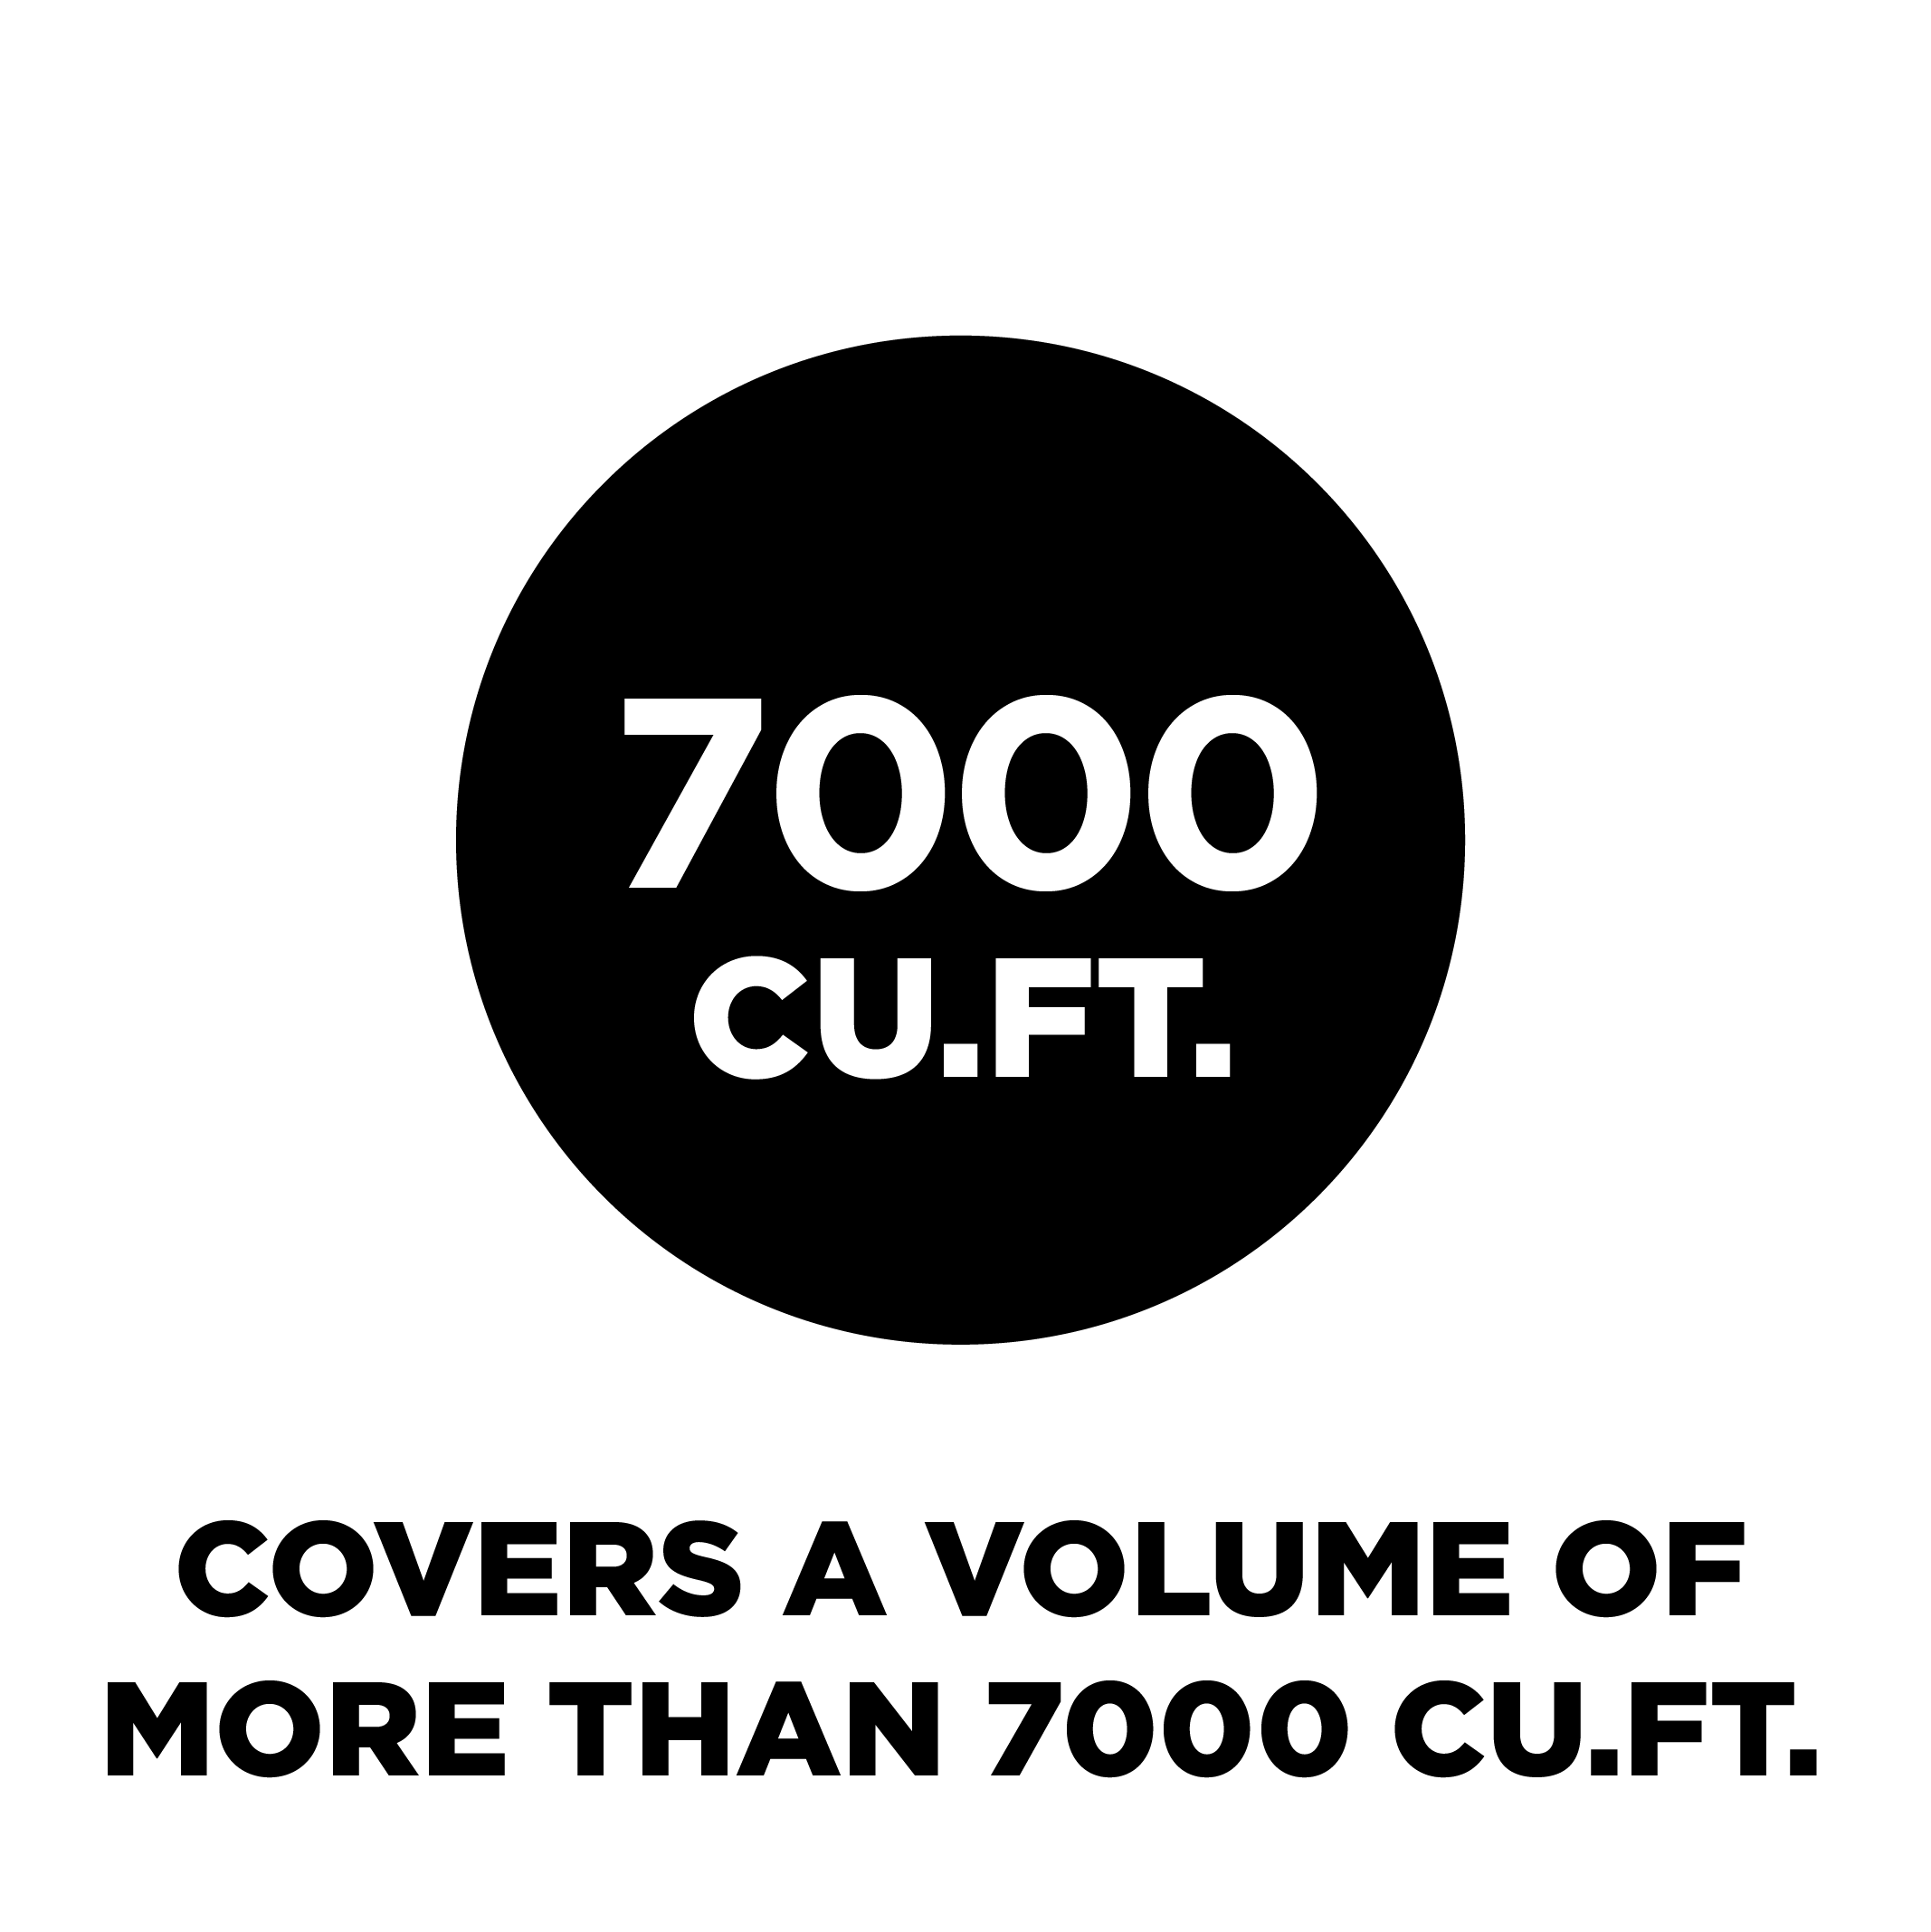 Covers a volume of more than 7000 cu.ft.